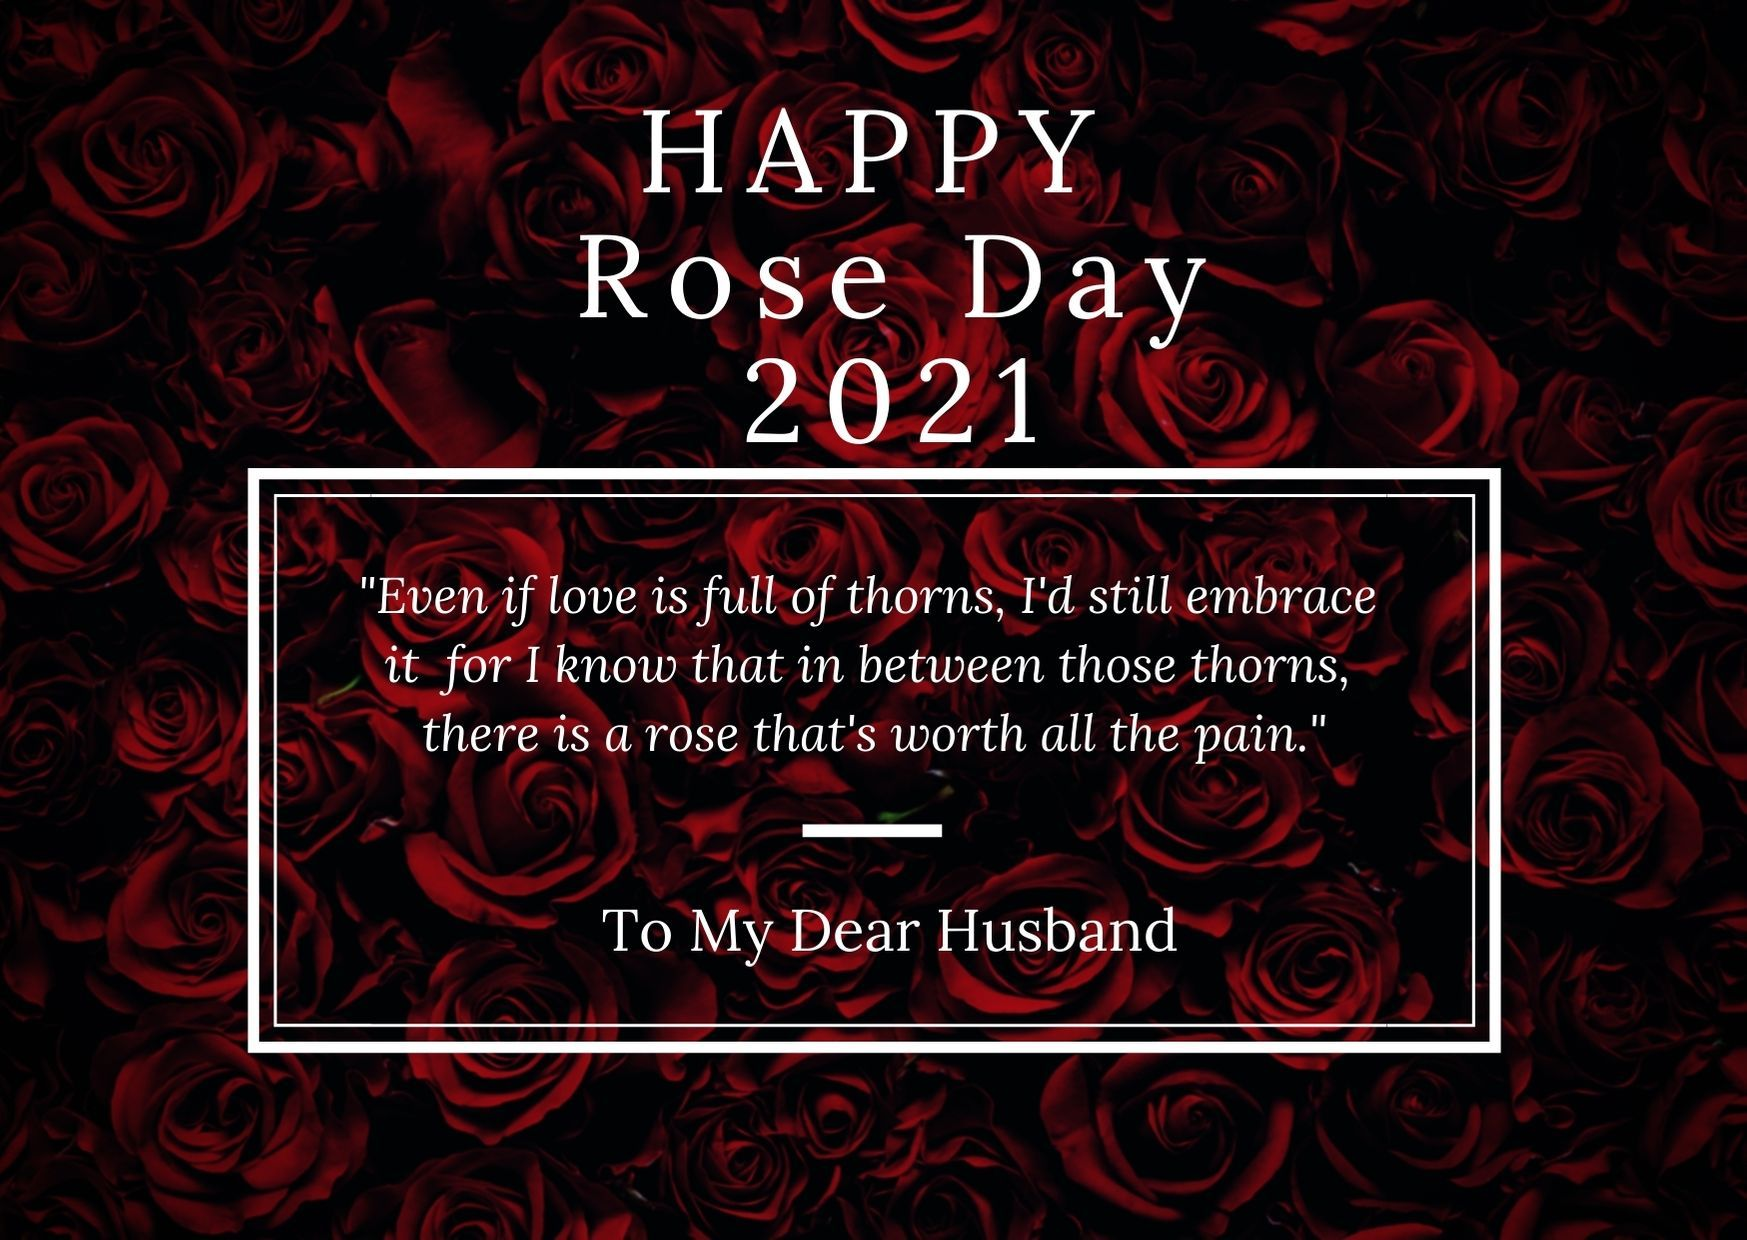 Happy Rose Day 2021 Messages For Husband In 2020 Love You Husband Message For Husband Day